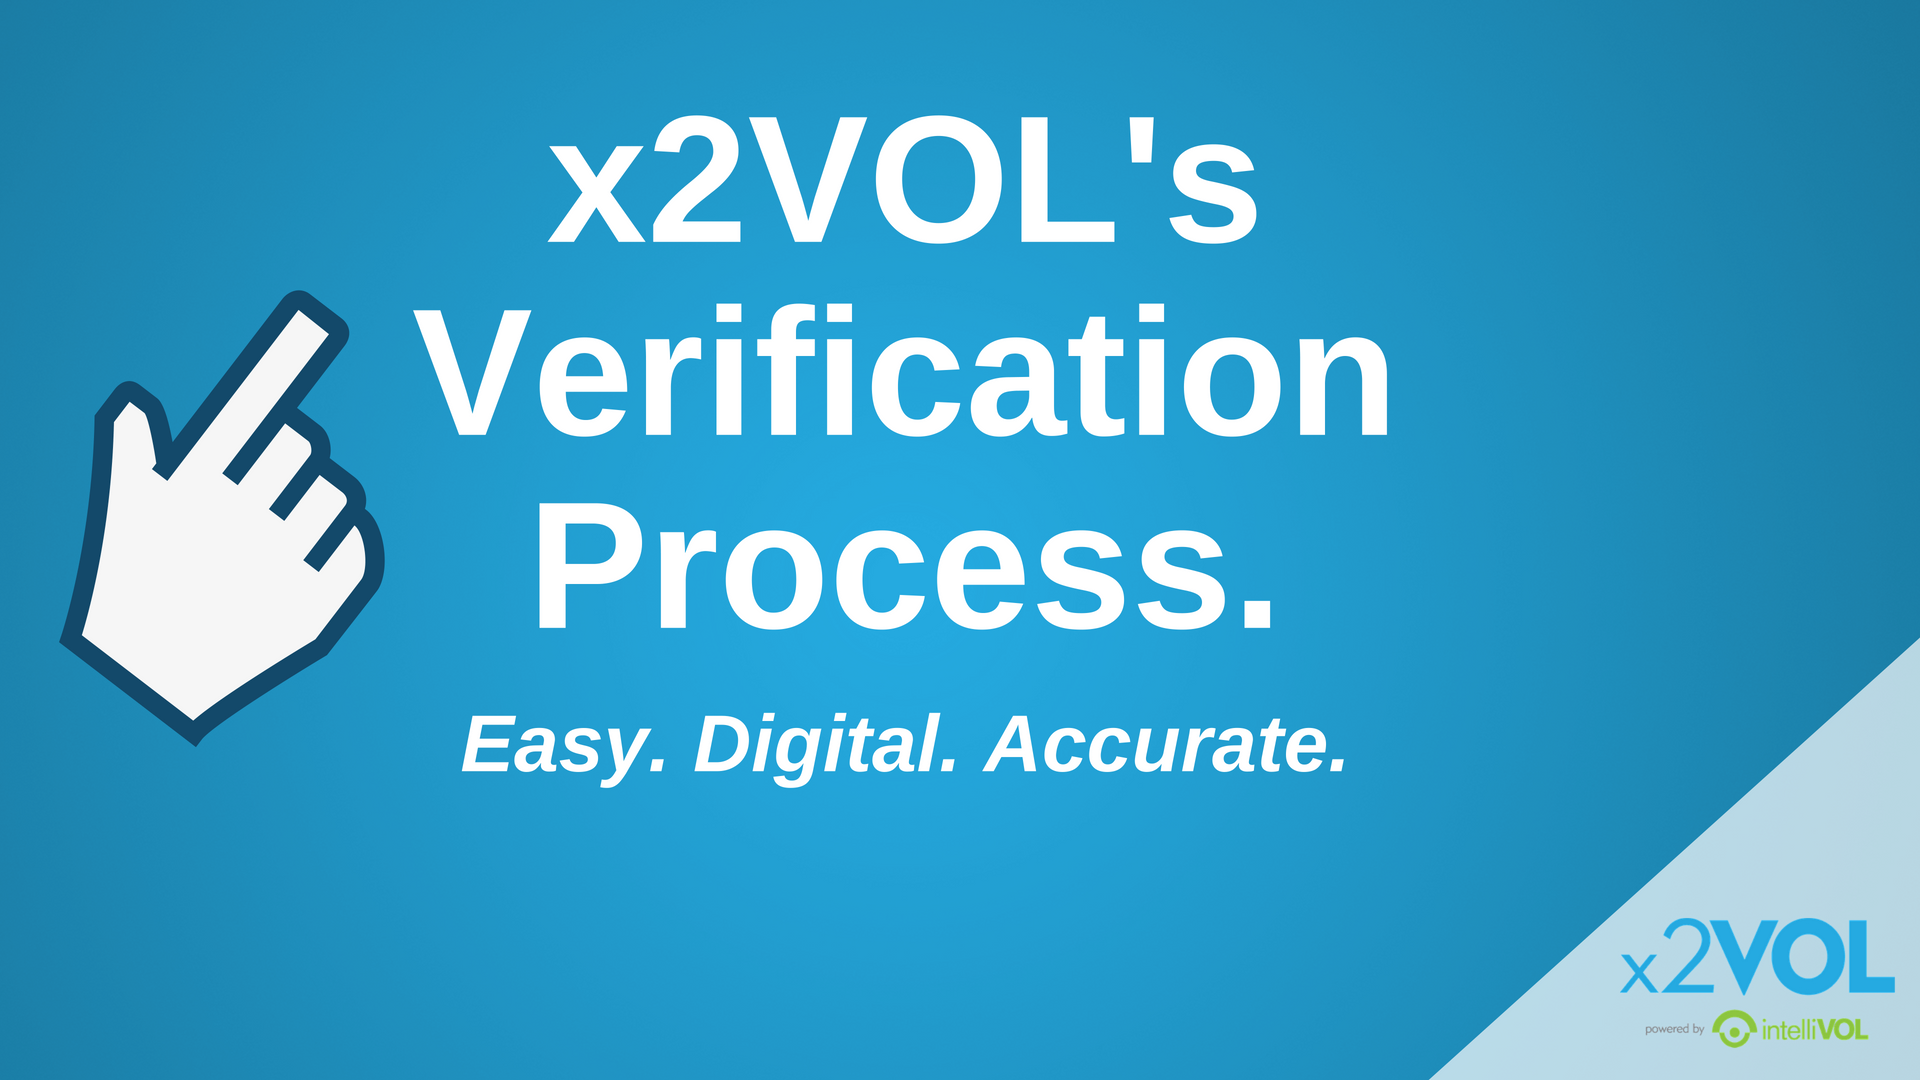 x2VOL's Verification Process